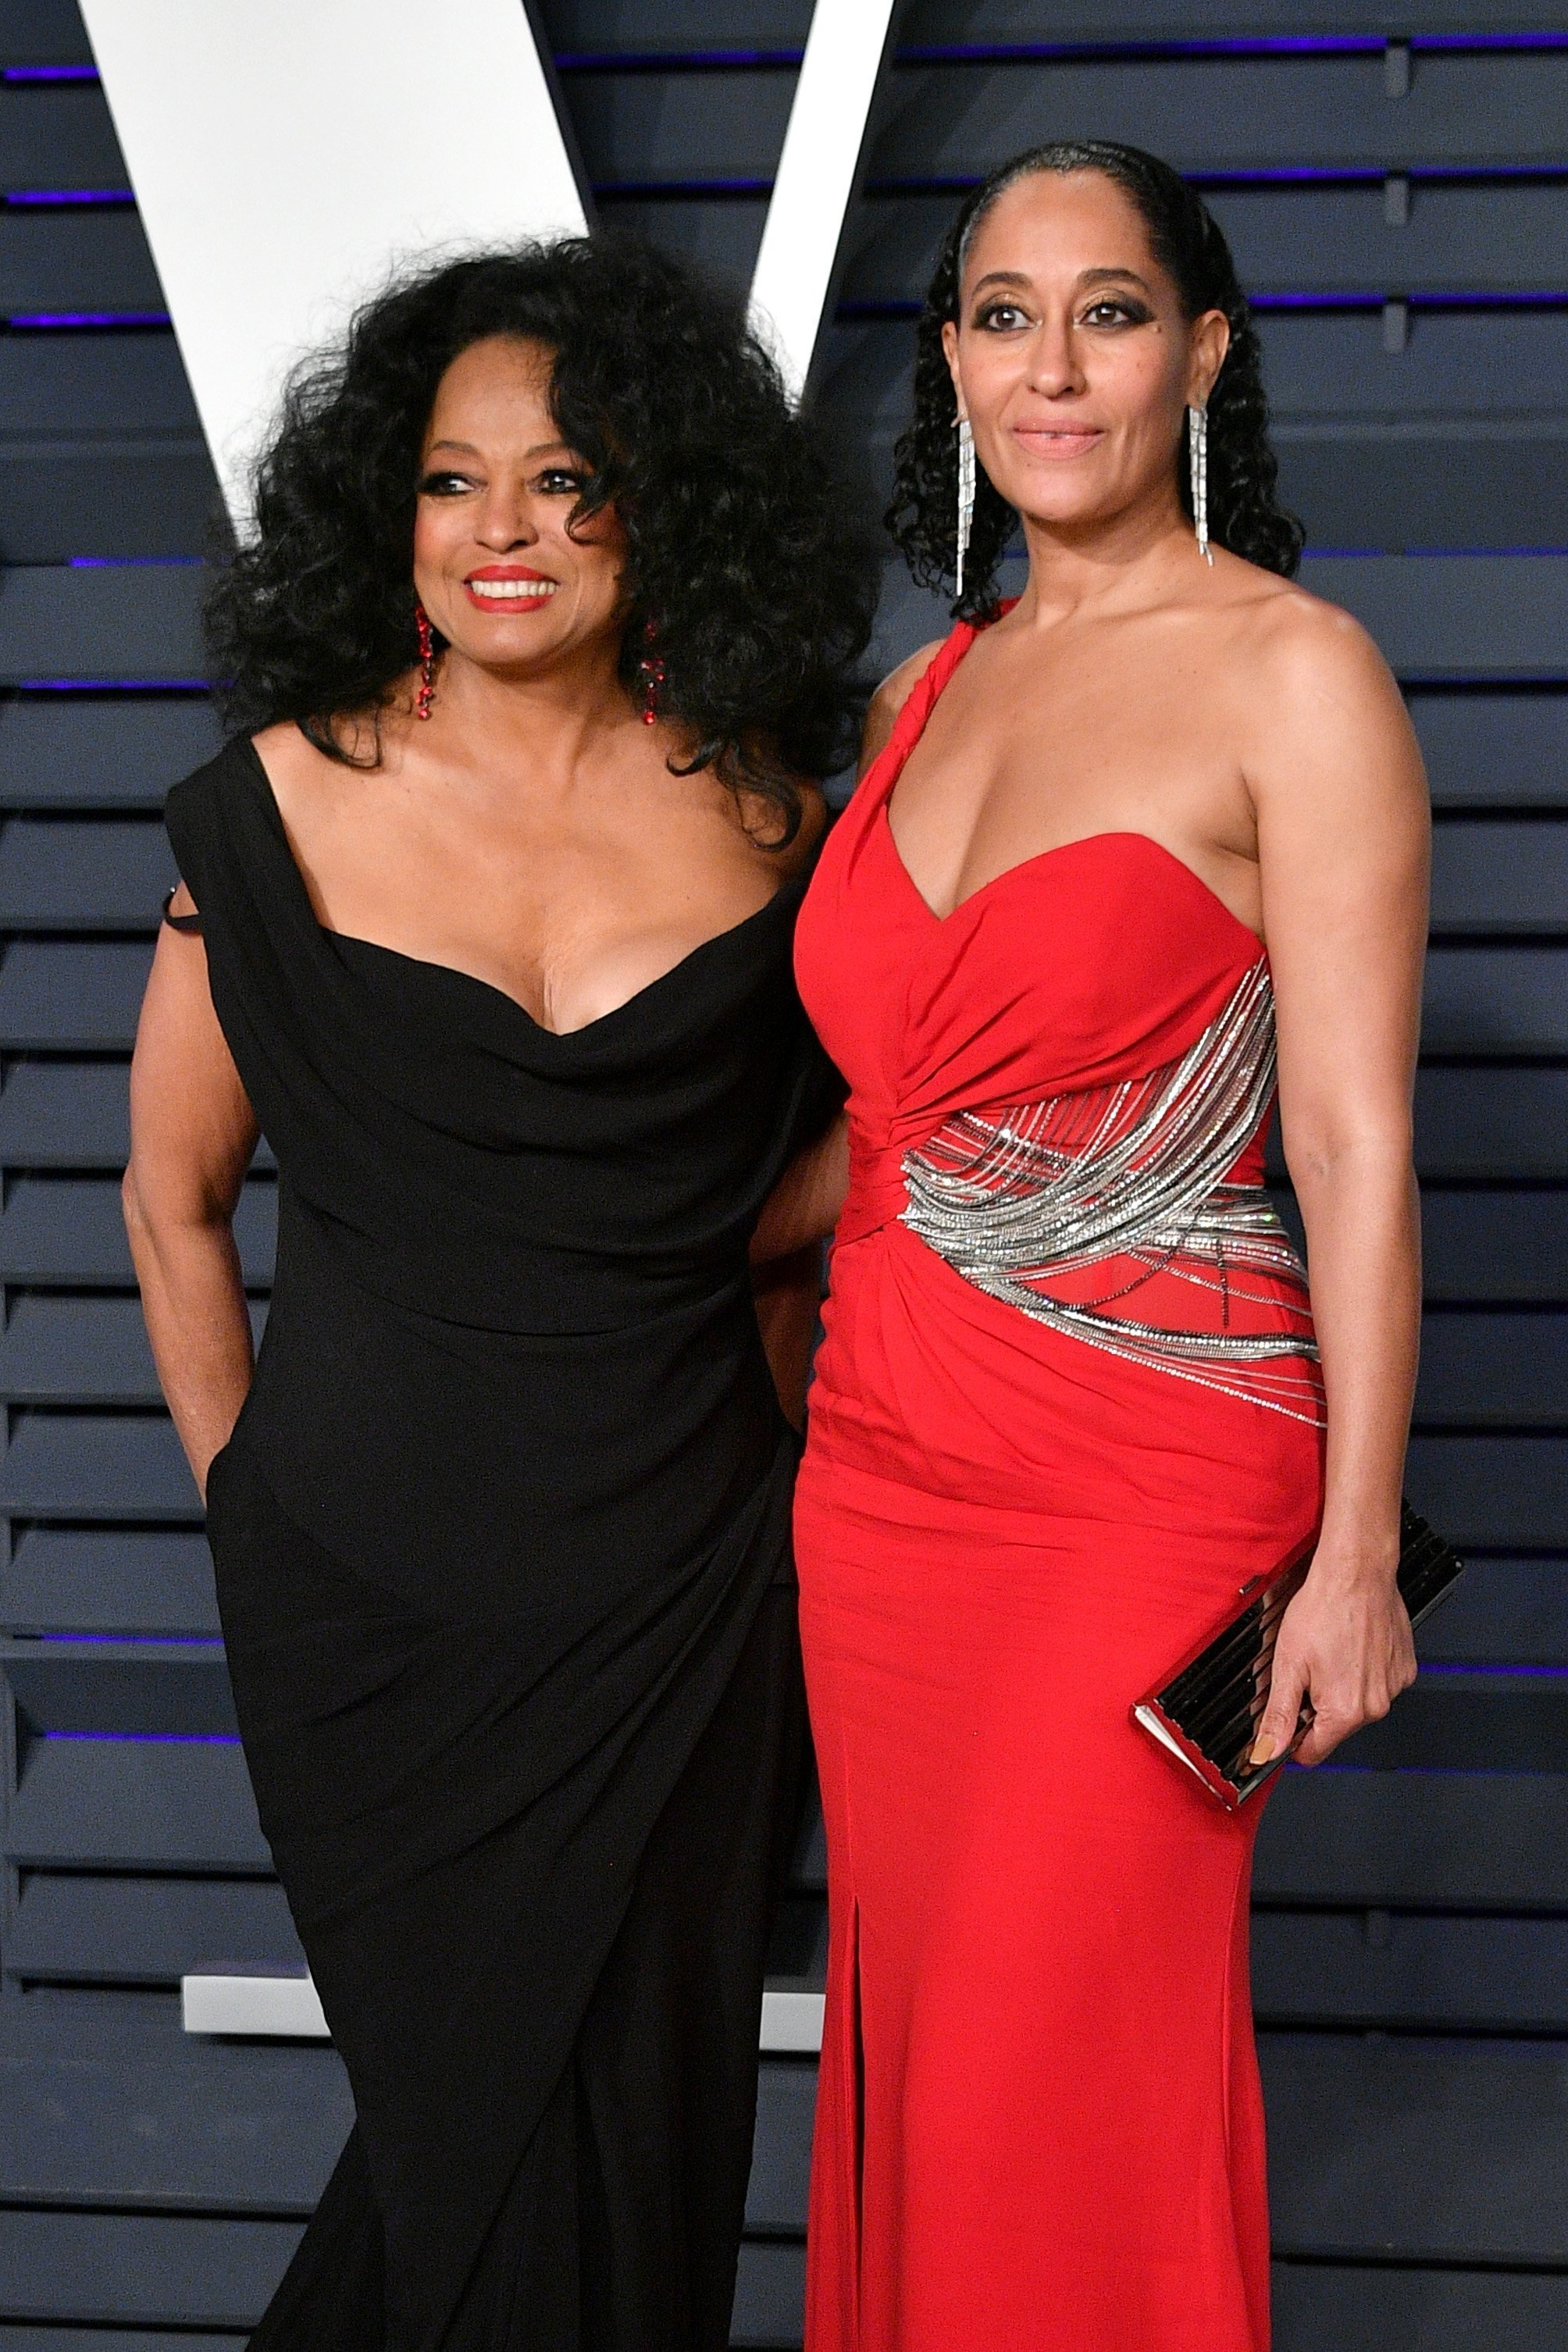 Diana Ross & Tracee Ellis Ross at the Vanity Fair Oscar Party on Feb. 24, 2019 in California | Photo: Getty Images